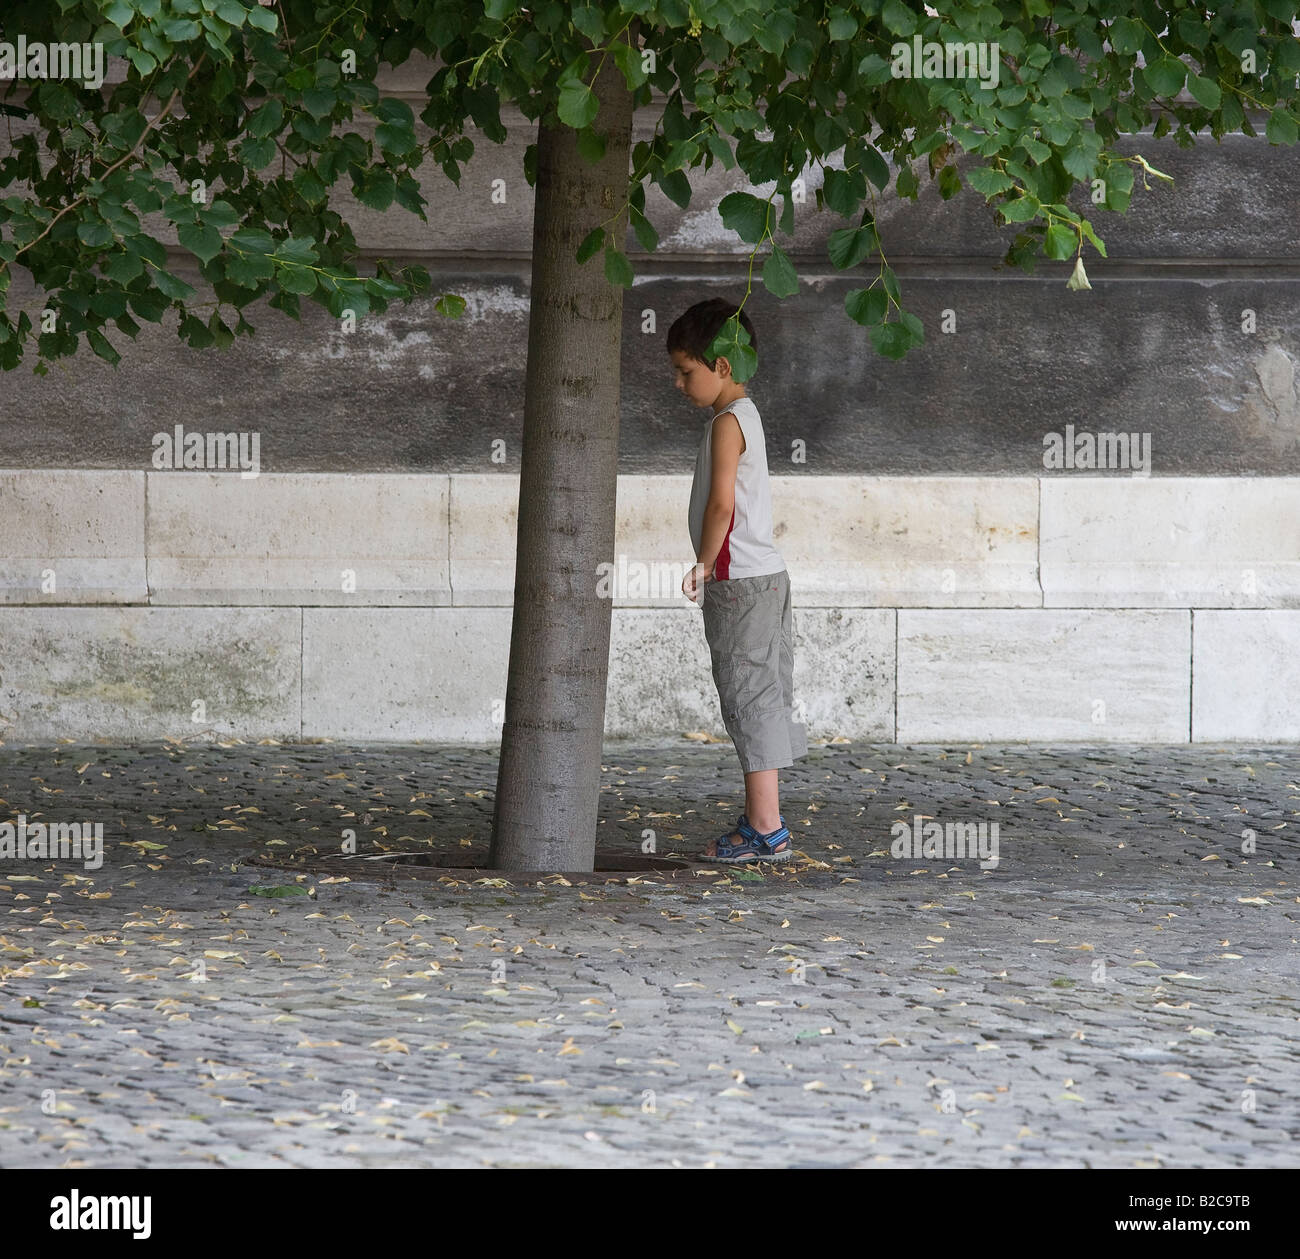 Pissing Pictures Free 66